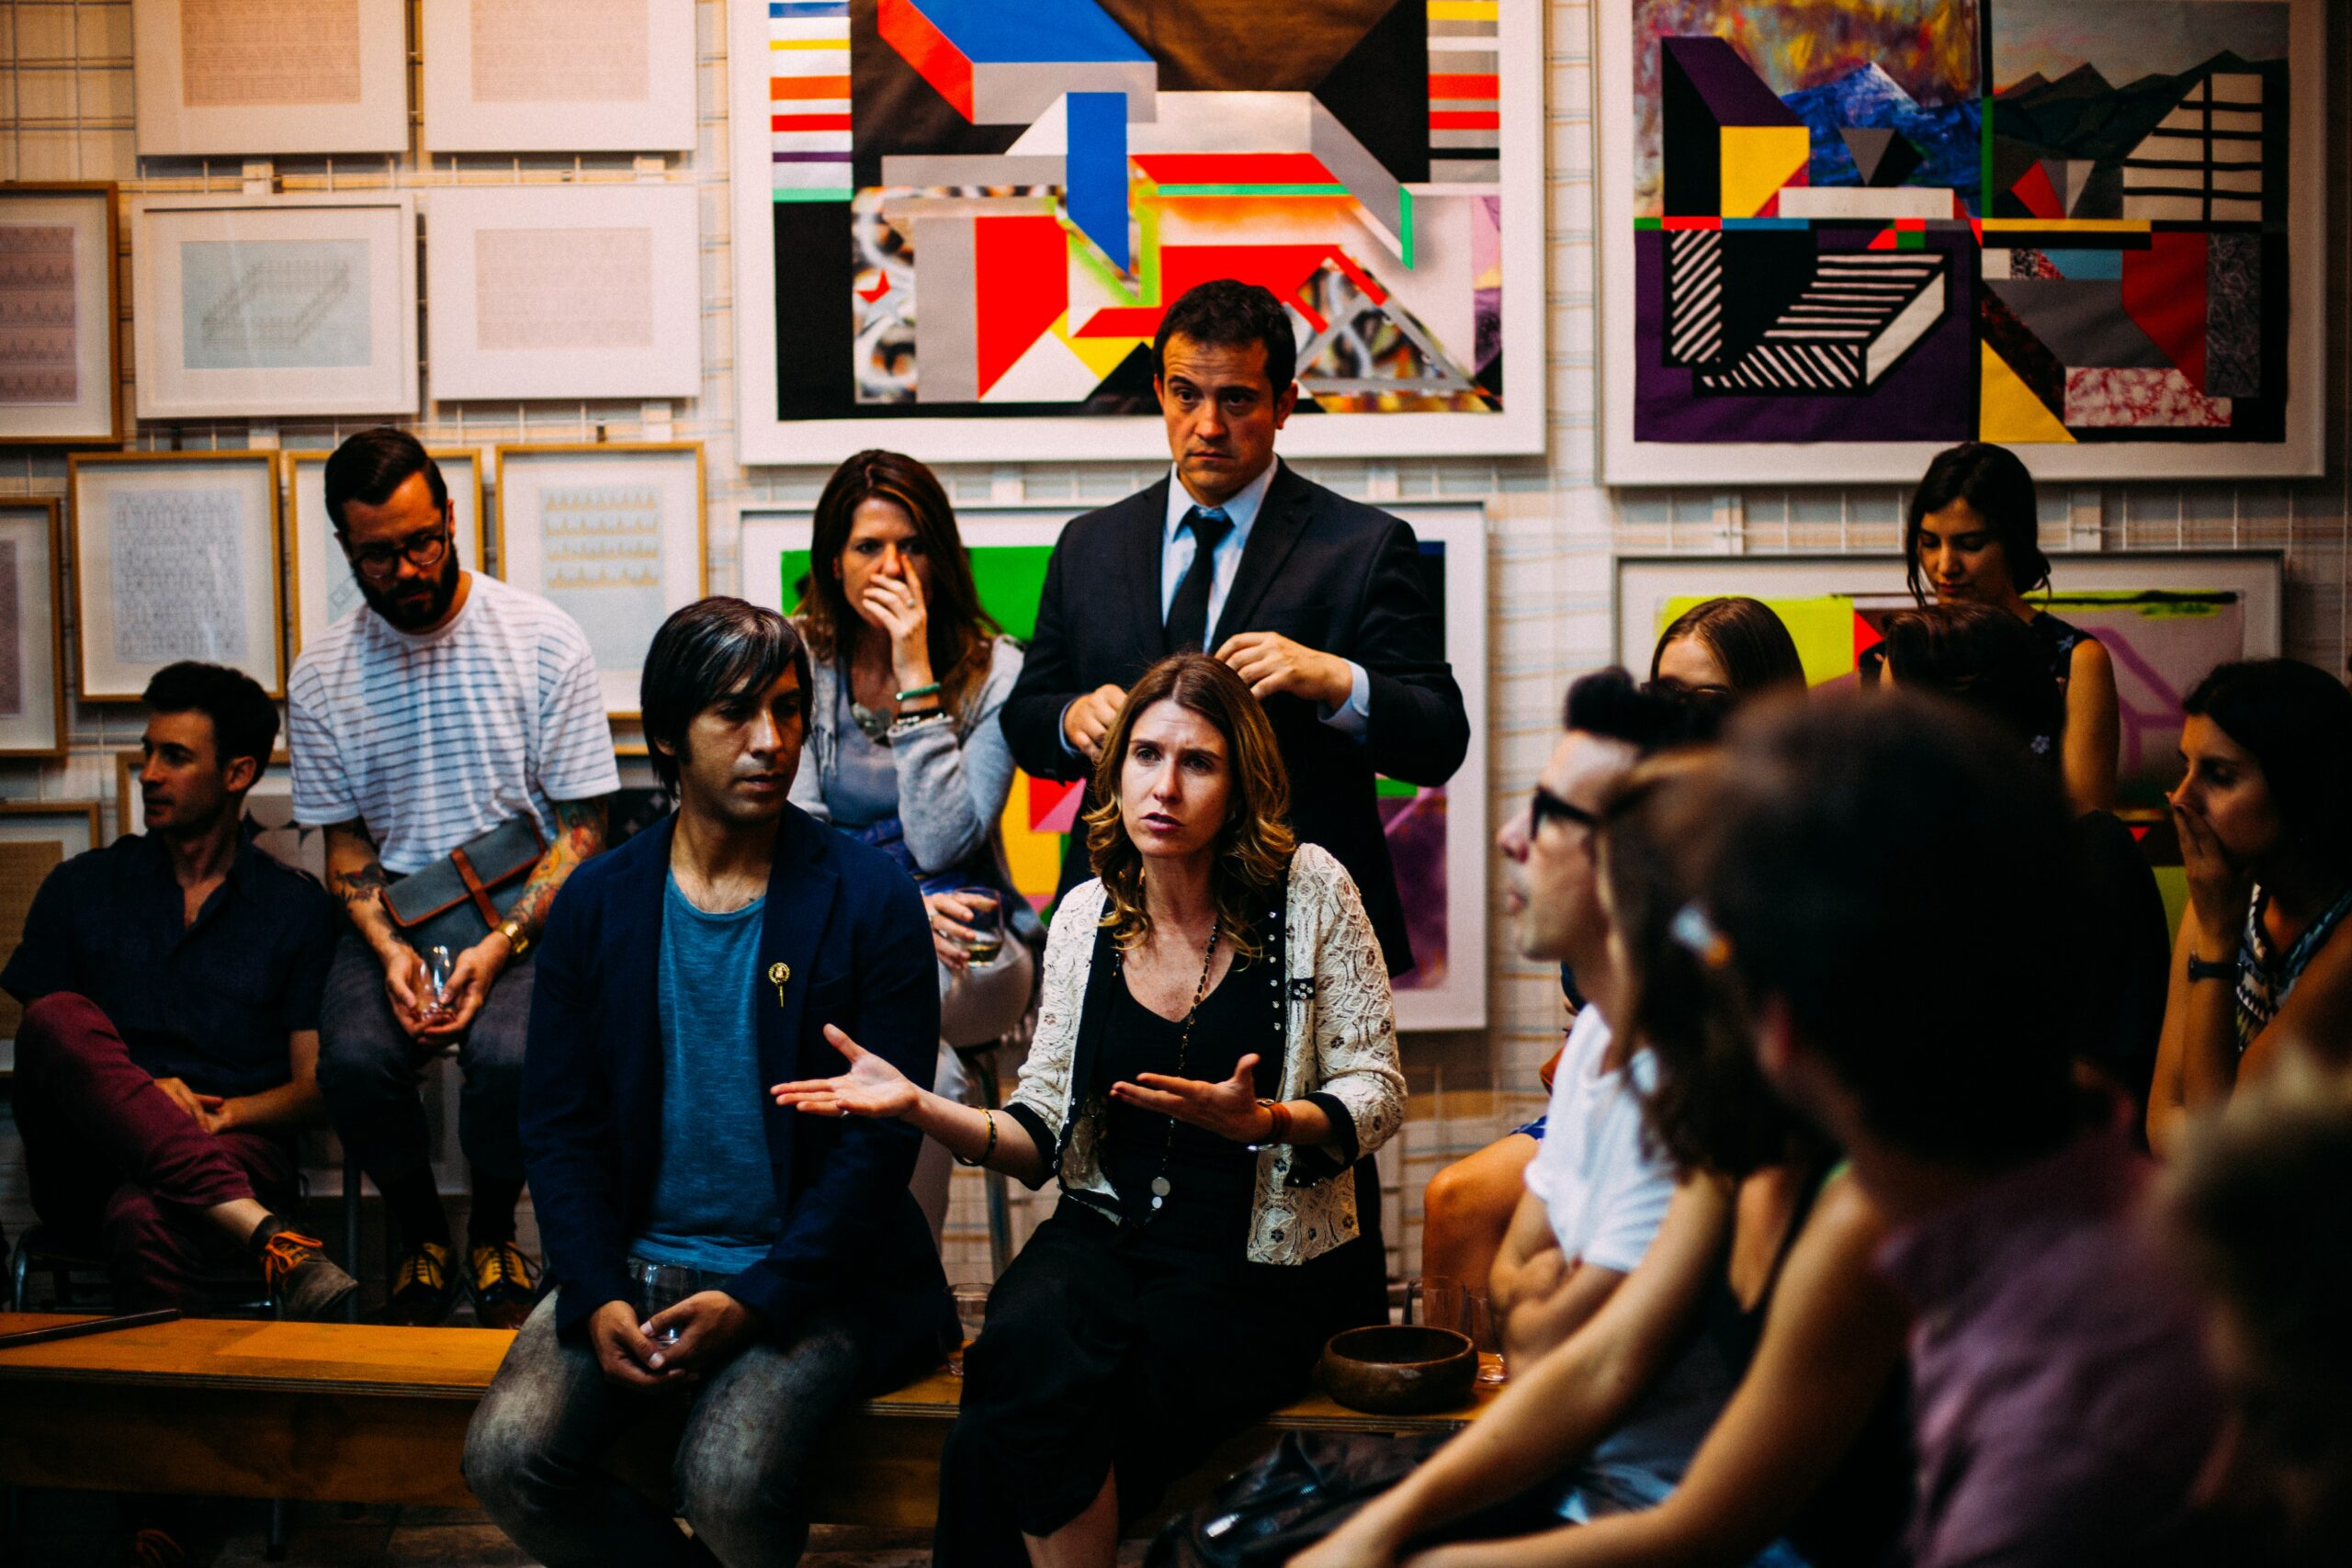 A group of young, diverse people, some sitting and some standing, having a serious group conversation